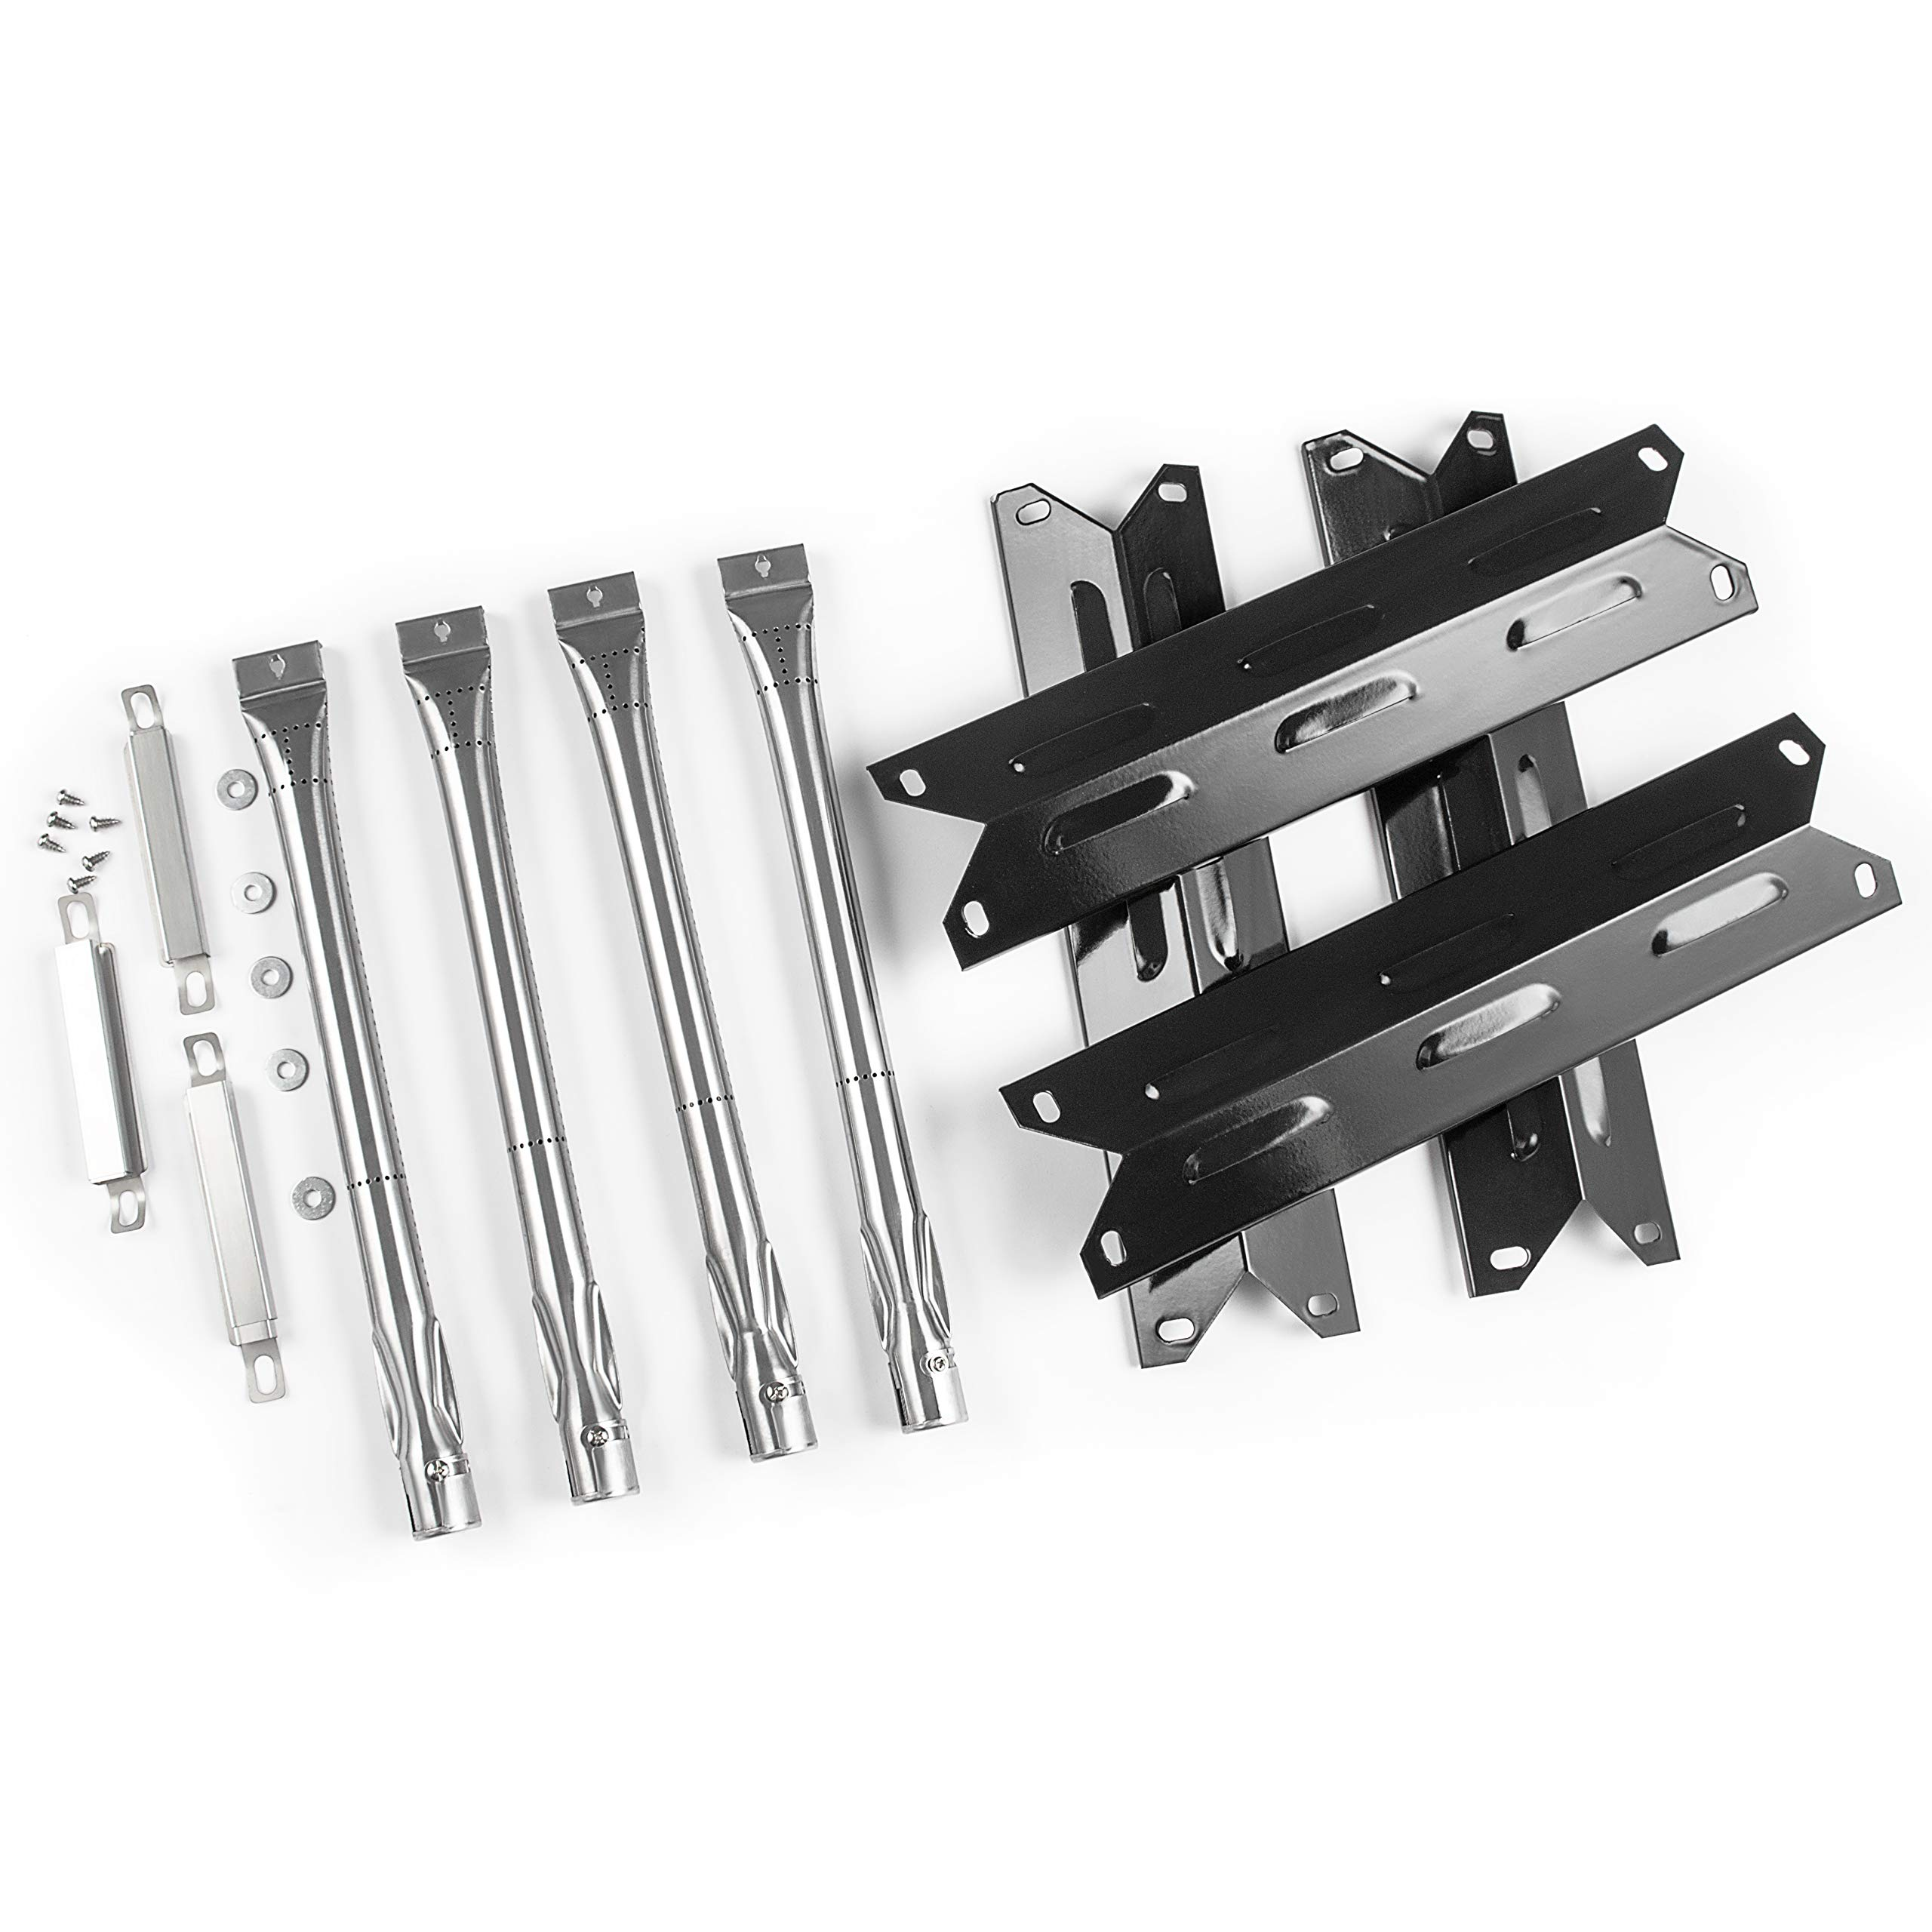 Grill Parts Kit for Kenmore 146.34611410, 146.23678310, 146.10016510, 146.16197210, 146.16132110, 146.34461410, 146.16142210, 146.23679310, 146.16198211, 146.46372610, 146.34611410, 146.10016510 by Grill Valueparts